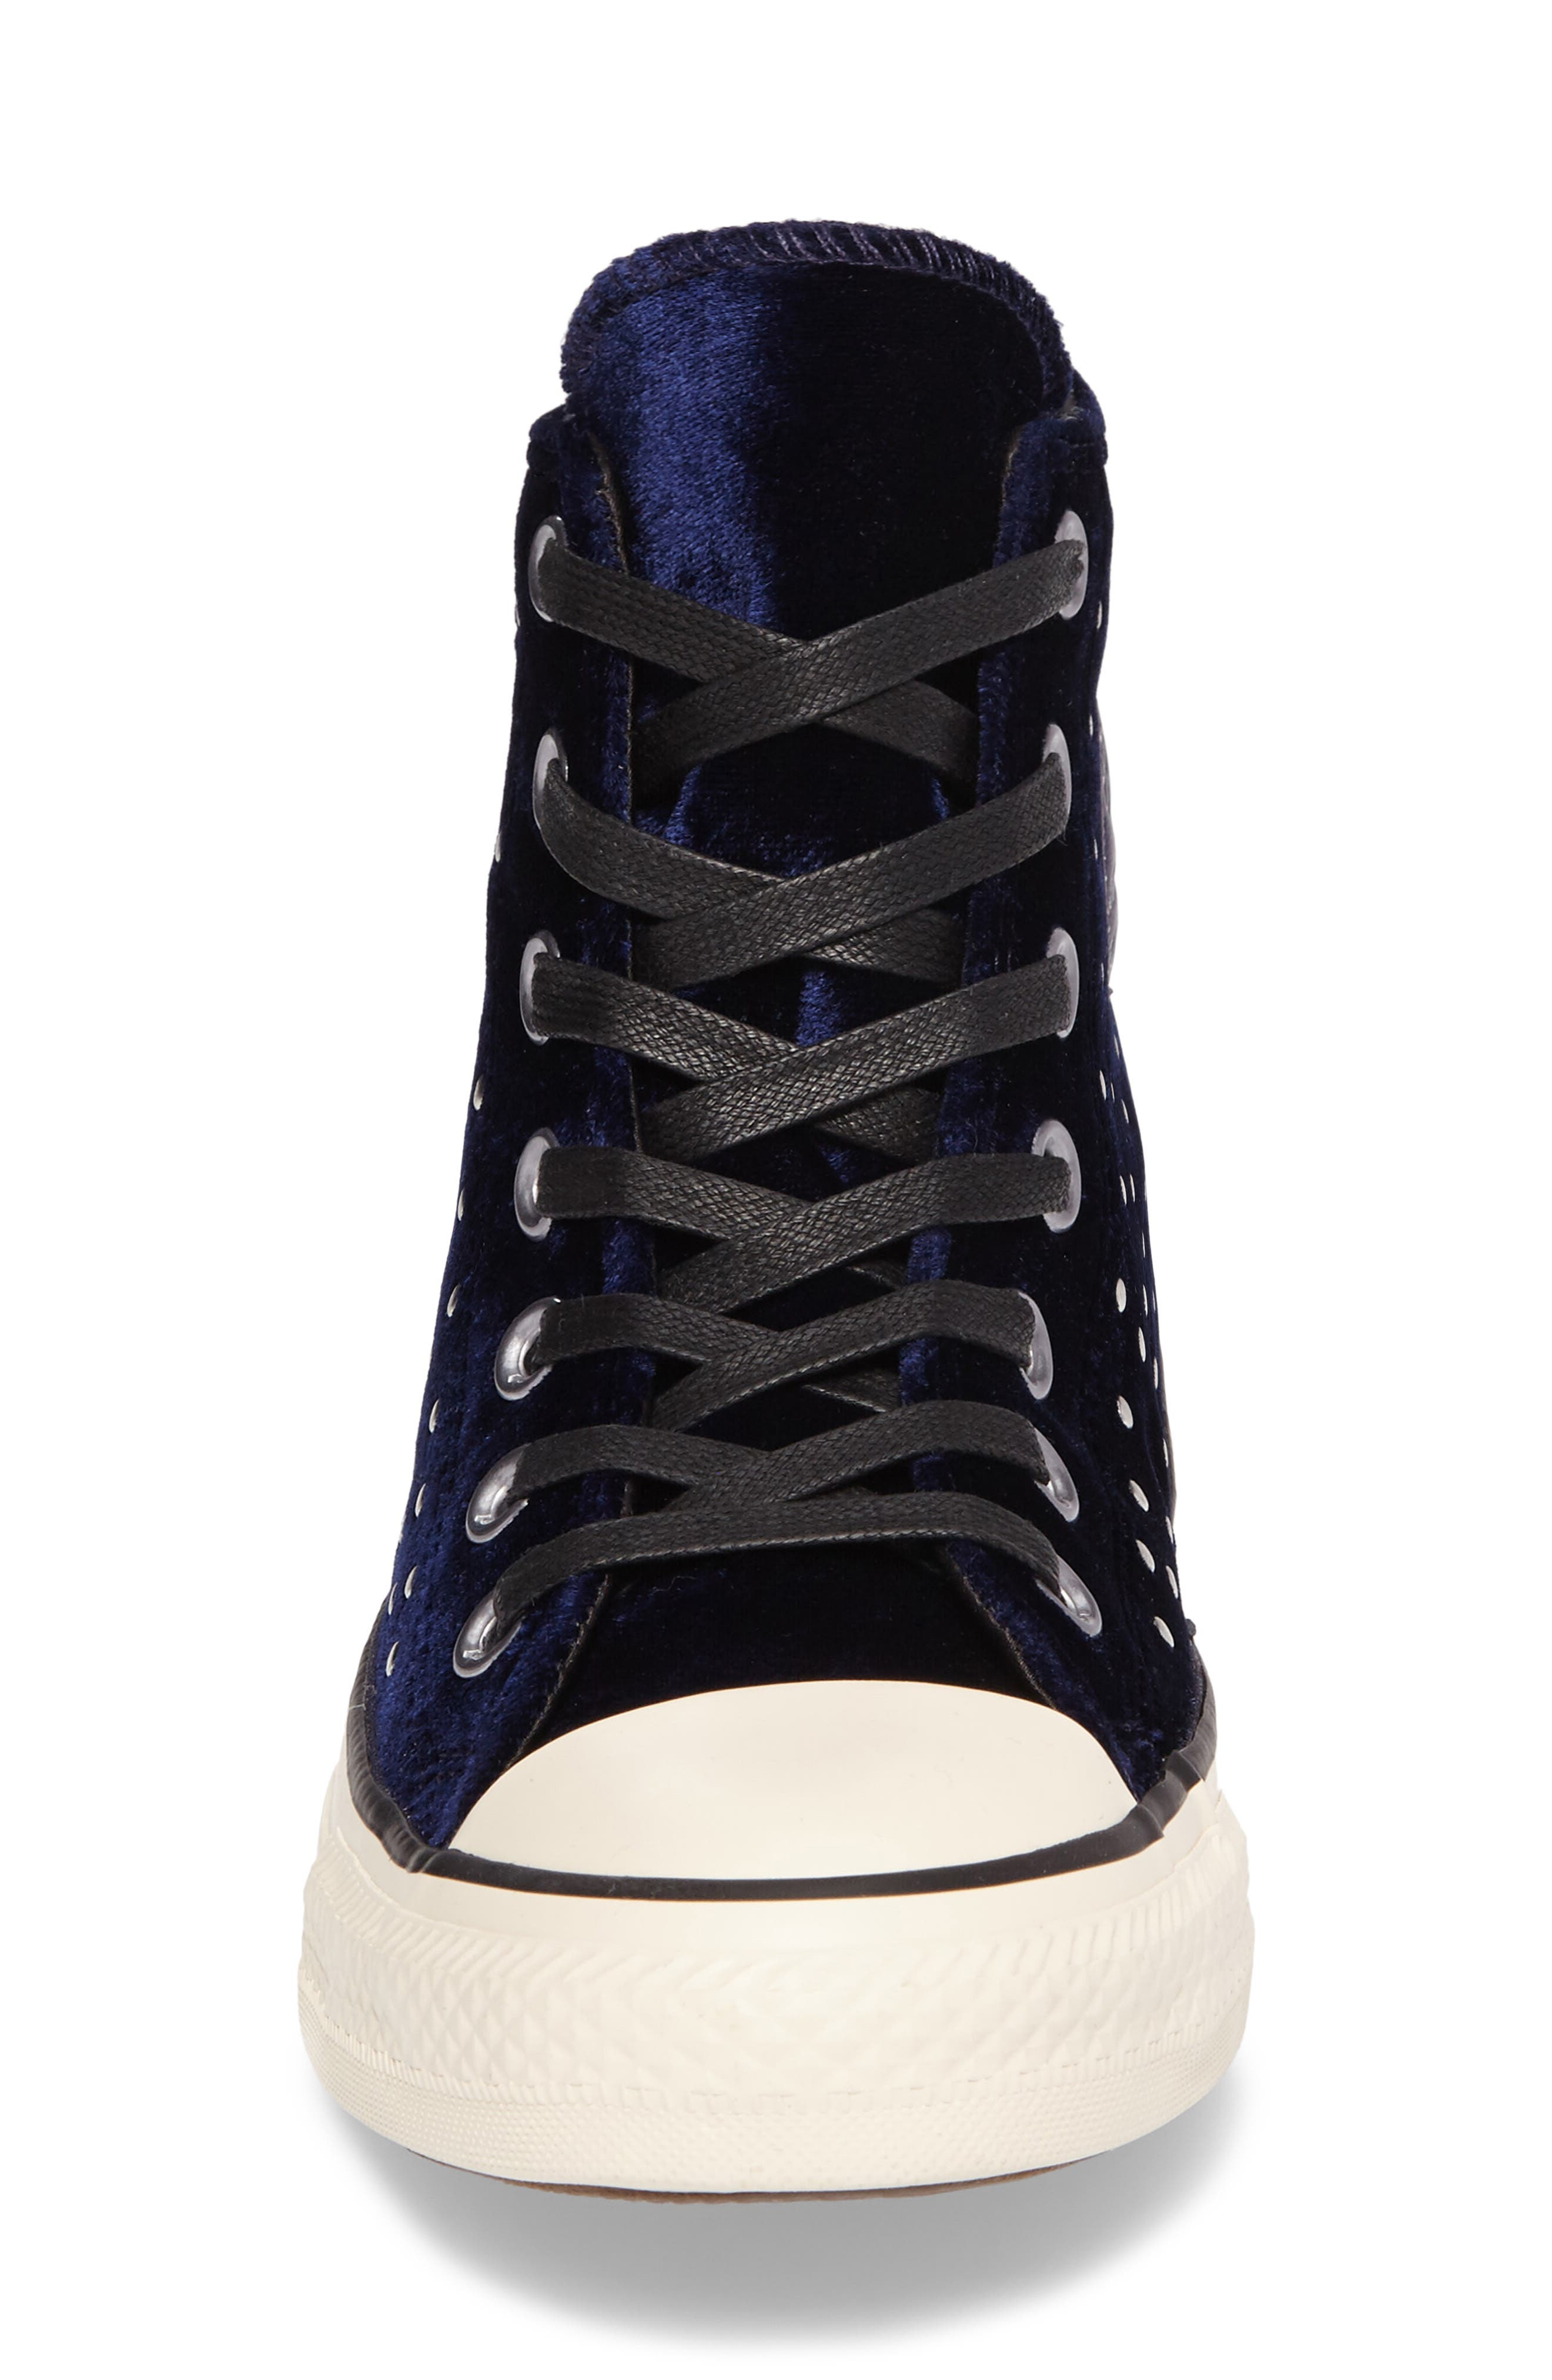 Chuck Taylor<sup>®</sup> All Star<sup>®</sup> Studded High Top Sneakers,                             Alternate thumbnail 11, color,